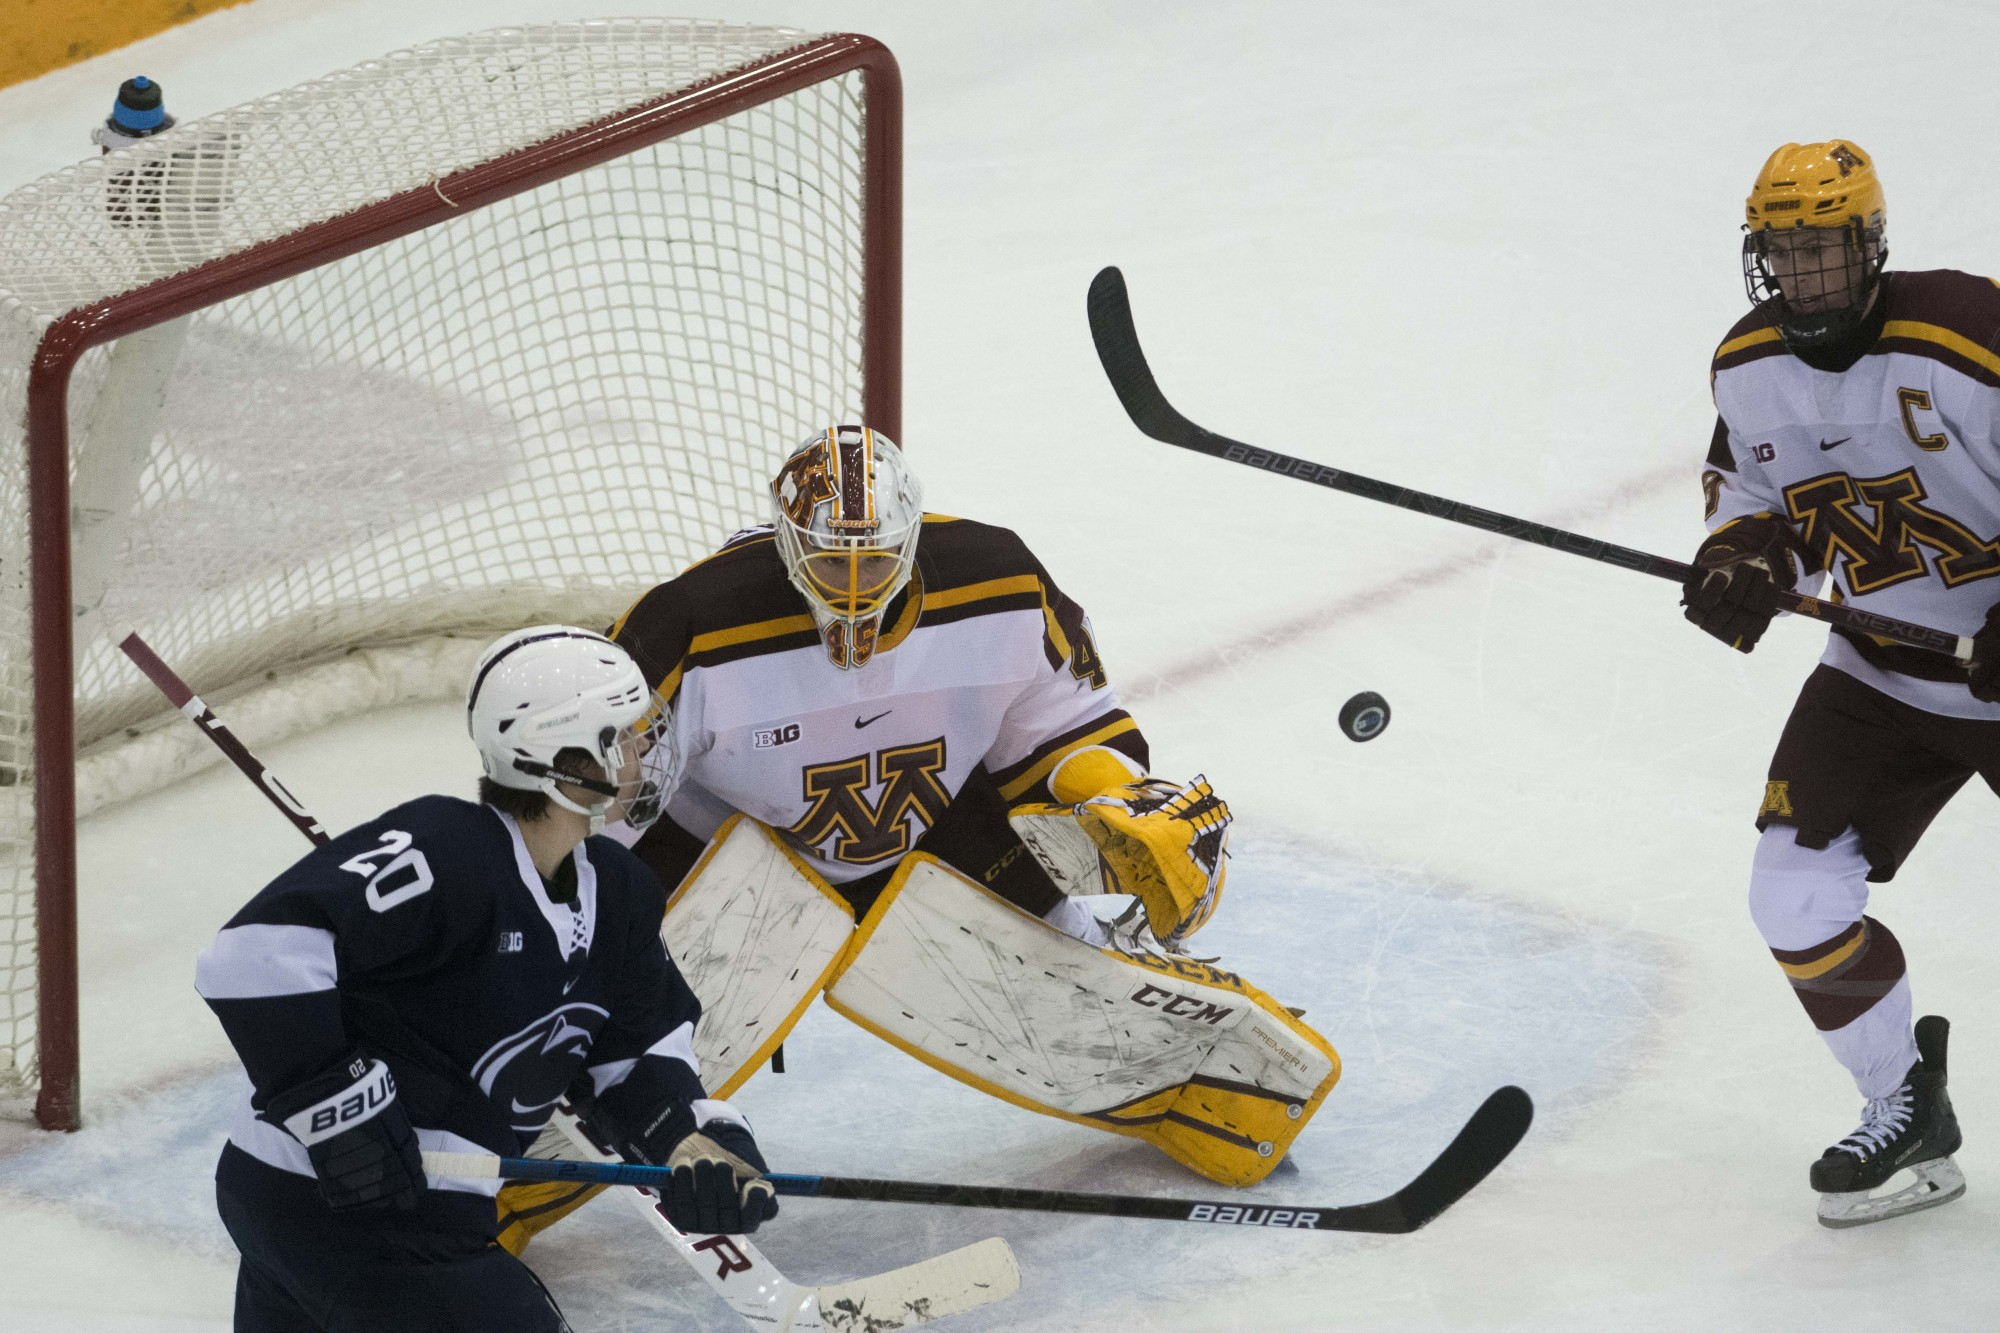 The puck flies through the air during the game against Penn State at 3M Arena at Mariucci on Friday, Nov. 15.